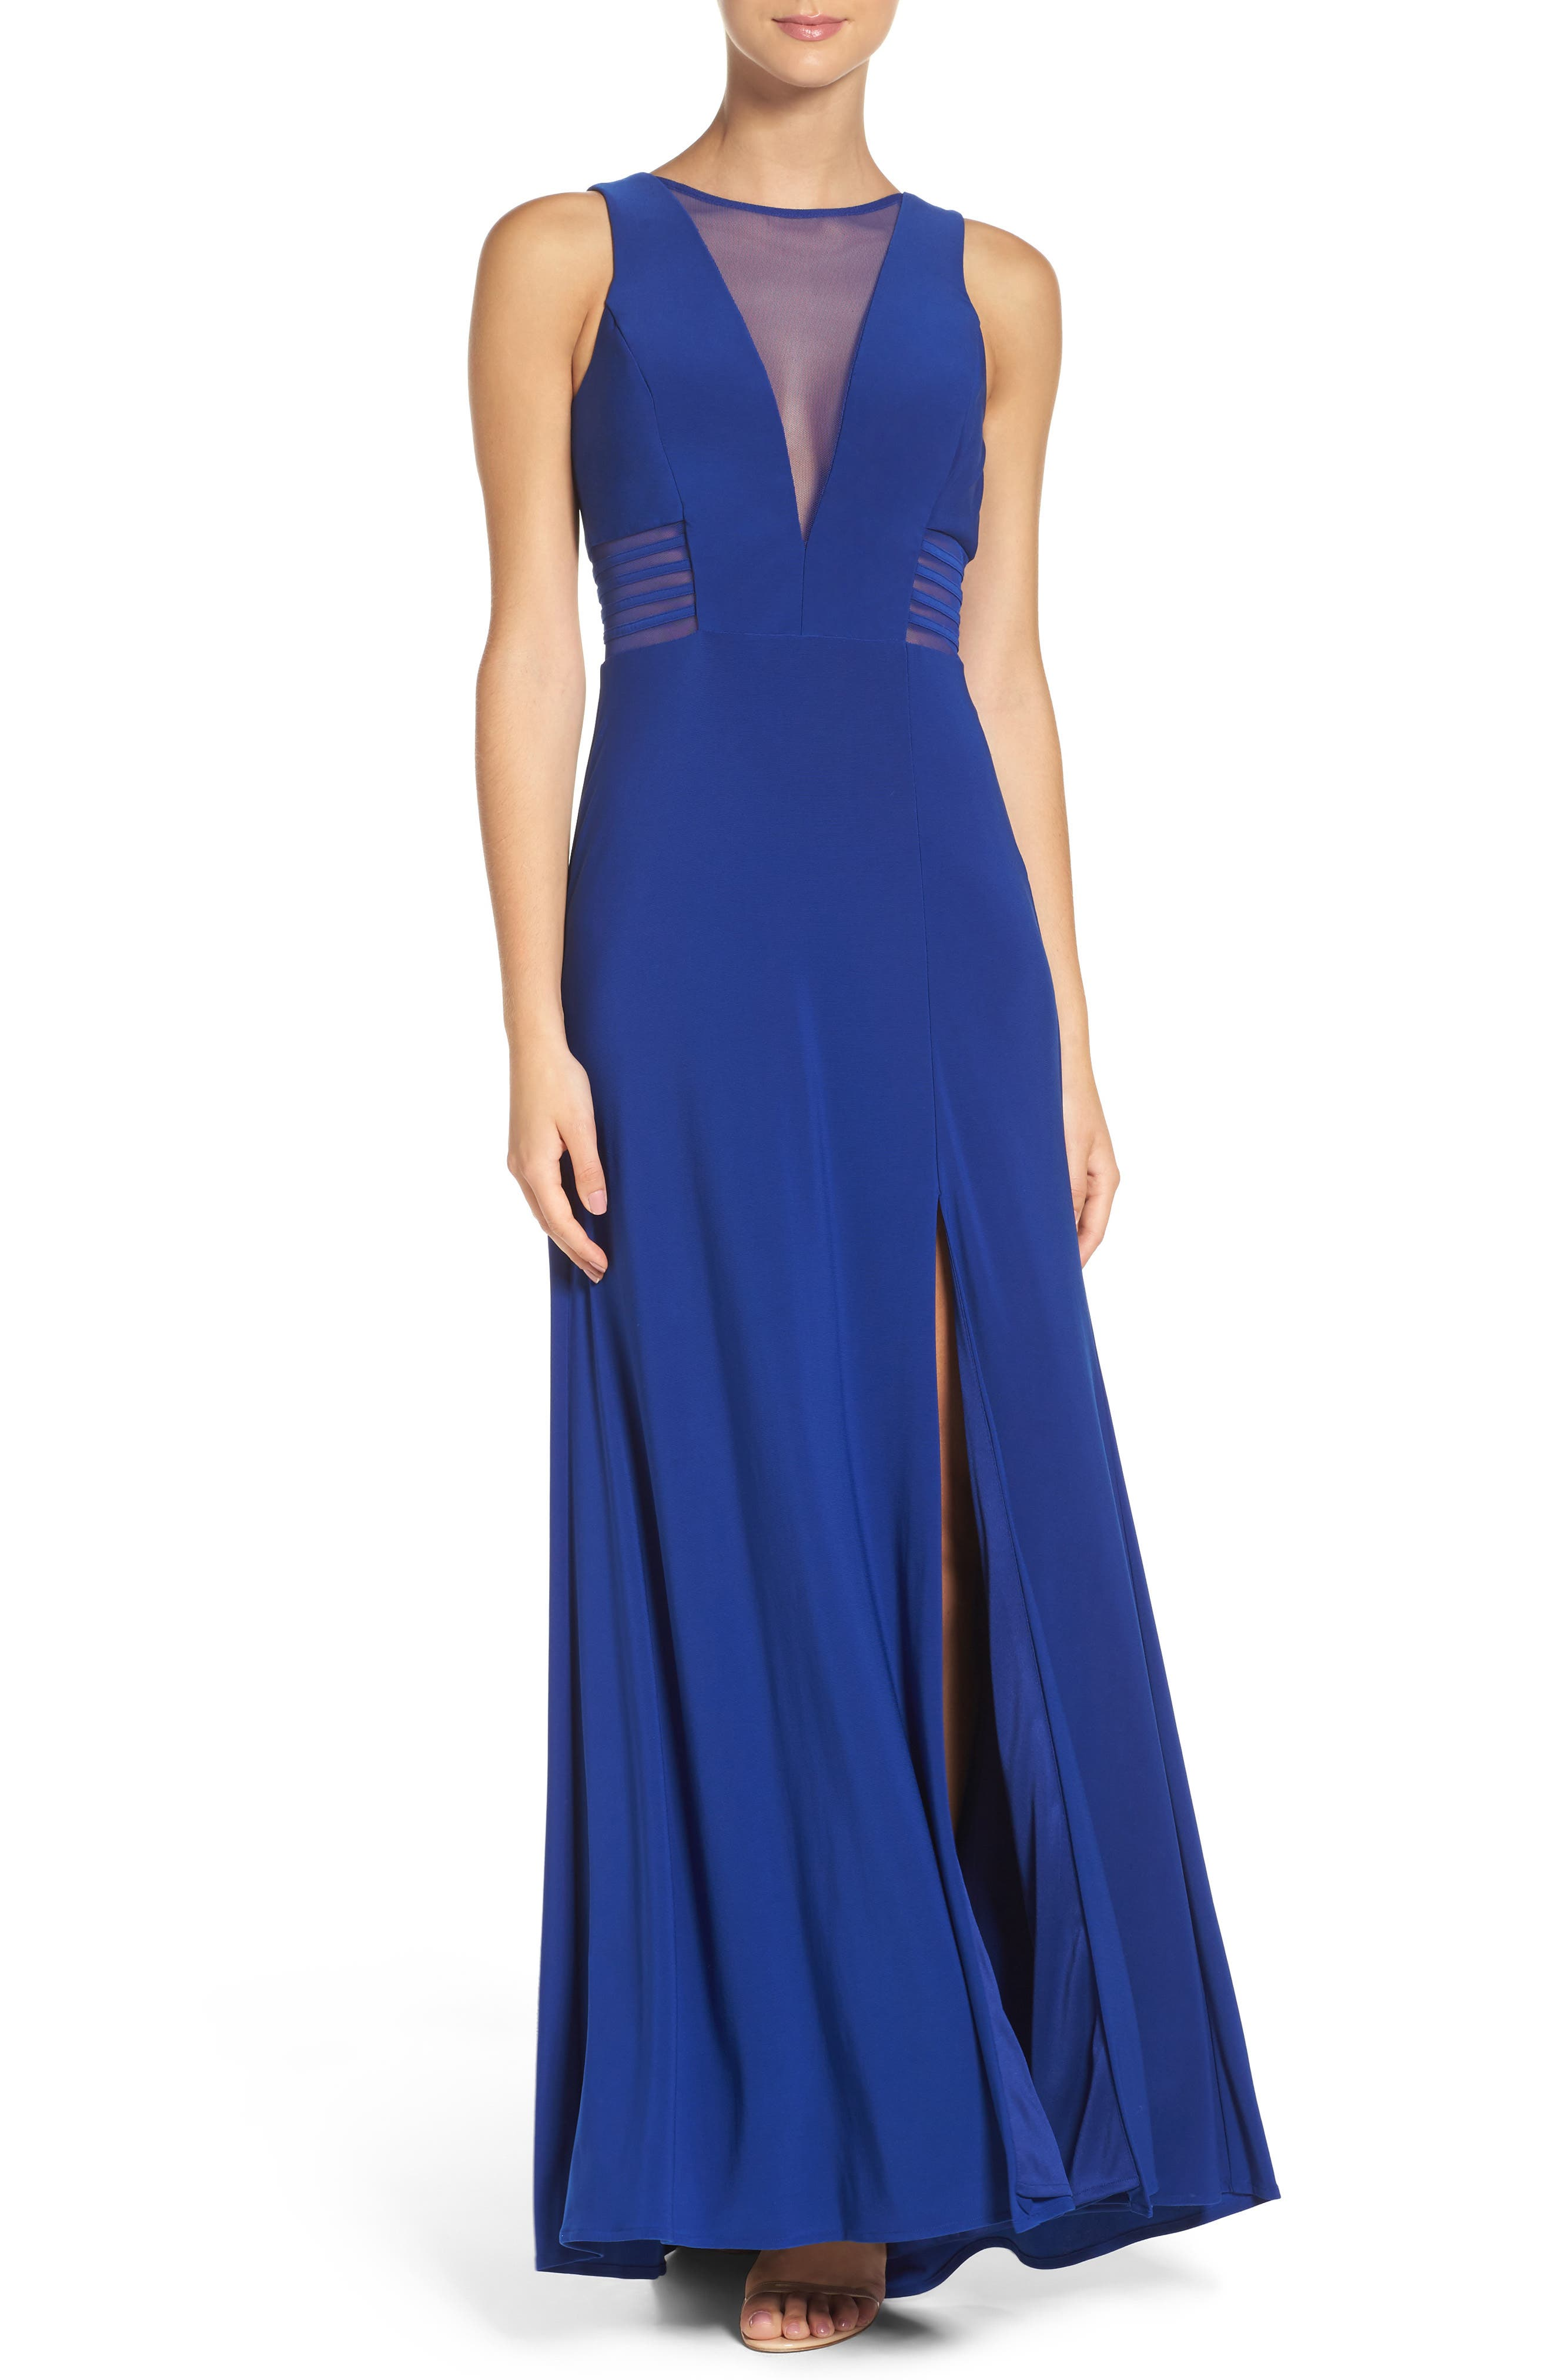 Morgan & Co. Illusion Gown, /4 - Blue